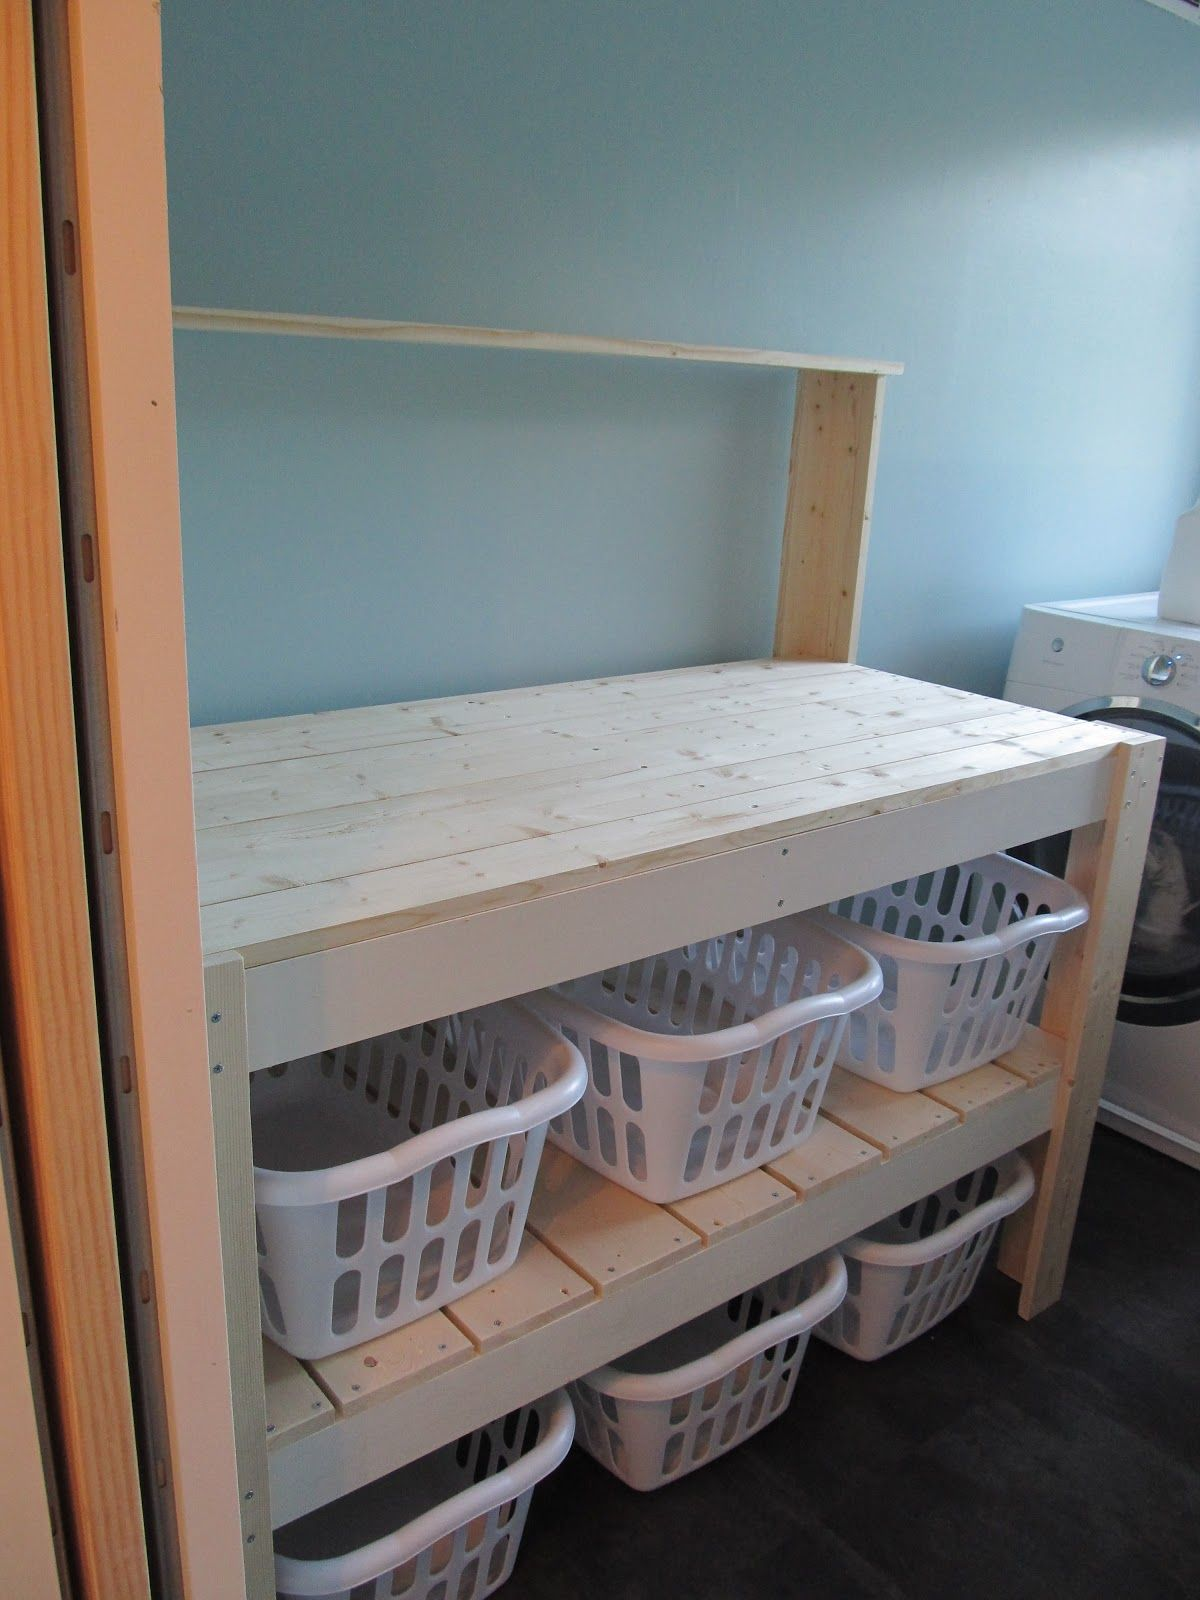 I made this laundry sorter based upon a potting bench DIY plan I